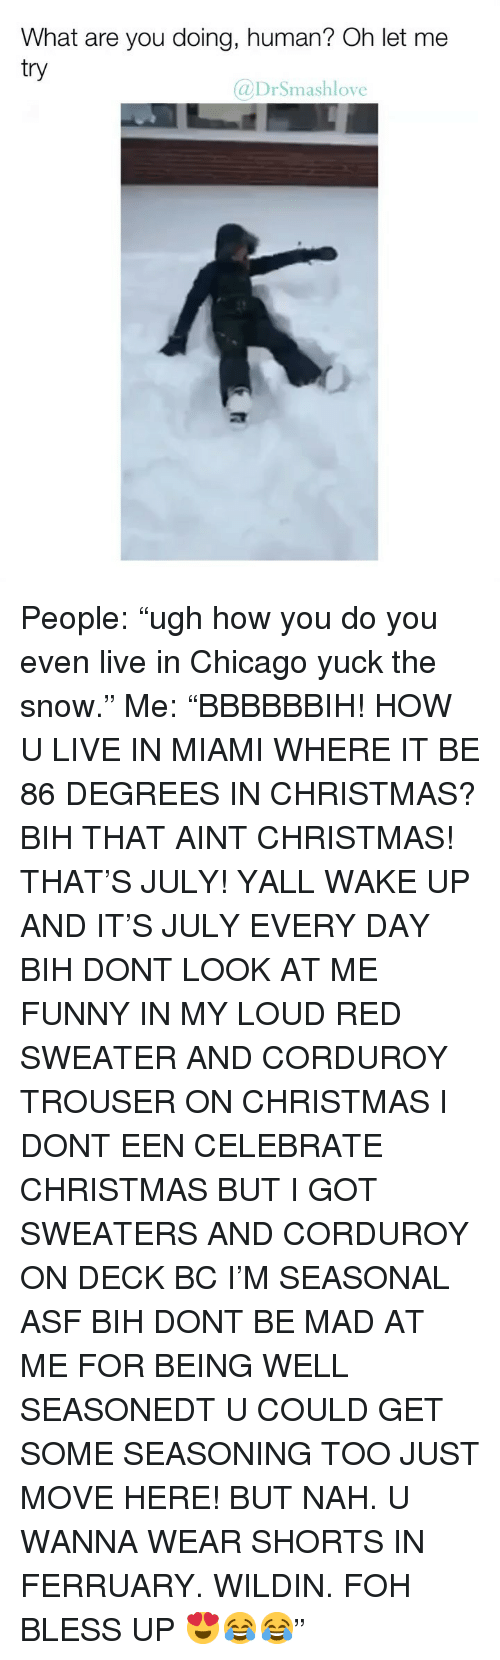 "FOH: What are you doing, human? Oh let me  try  @DrSmashlove People: ""ugh how you do you even live in Chicago yuck the snow."" Me: ""BBBBBBIH! HOW U LIVE IN MIAMI WHERE IT BE 86 DEGREES IN CHRISTMAS? BIH THAT AINT CHRISTMAS! THAT'S JULY! YALL WAKE UP AND IT'S JULY EVERY DAY BIH DONT LOOK AT ME FUNNY IN MY LOUD RED SWEATER AND CORDUROY TROUSER ON CHRISTMAS I DONT EEN CELEBRATE CHRISTMAS BUT I GOT SWEATERS AND CORDUROY ON DECK BC I'M SEASONAL ASF BIH DONT BE MAD AT ME FOR BEING WELL SEASONEDT U COULD GET SOME SEASONING TOO JUST MOVE HERE! BUT NAH. U WANNA WEAR SHORTS IN FERRUARY. WILDIN. FOH BLESS UP 😍😂😂"""